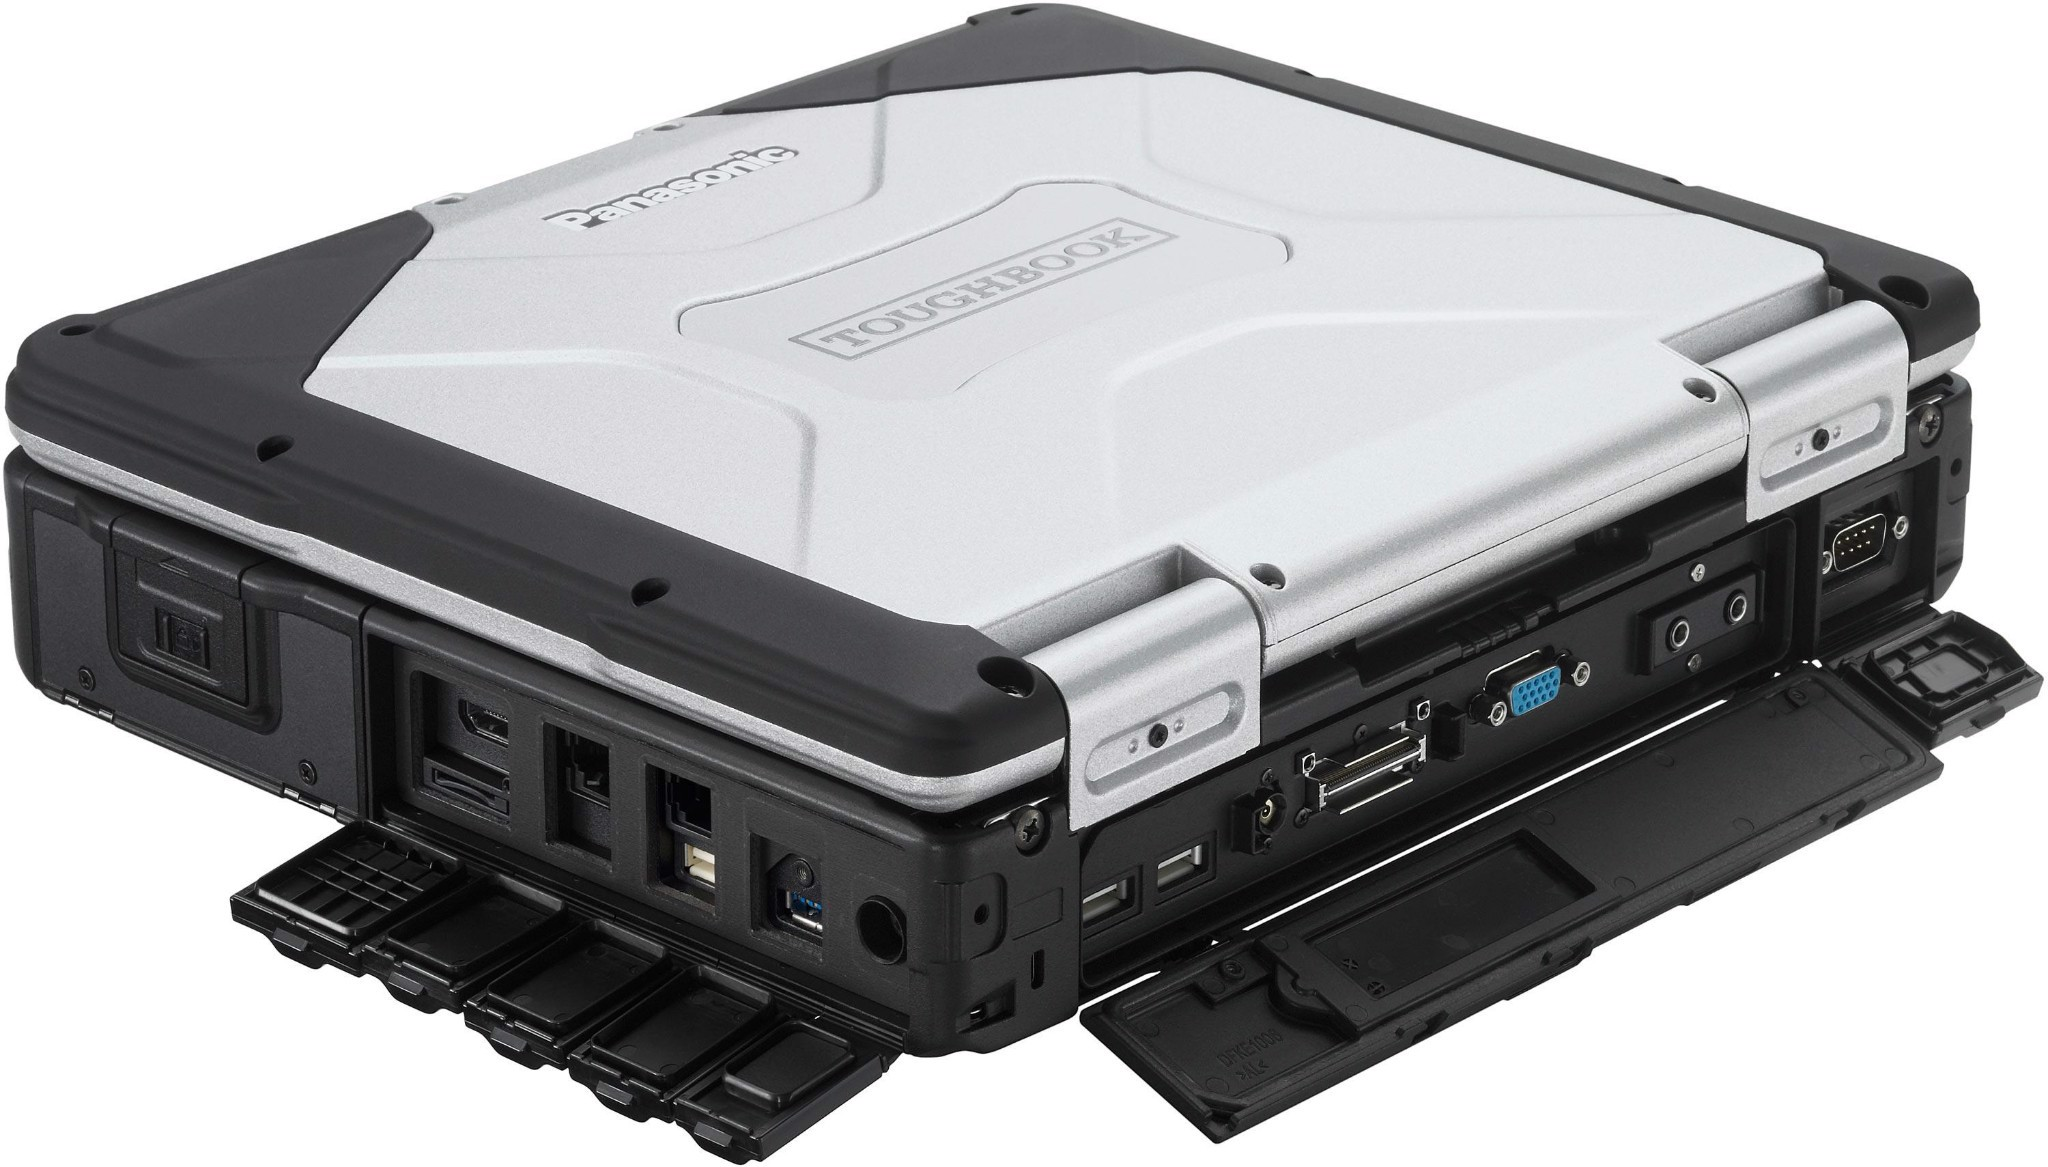 Panasonic Toughbook CF-31 MK2 Core i5-2520M